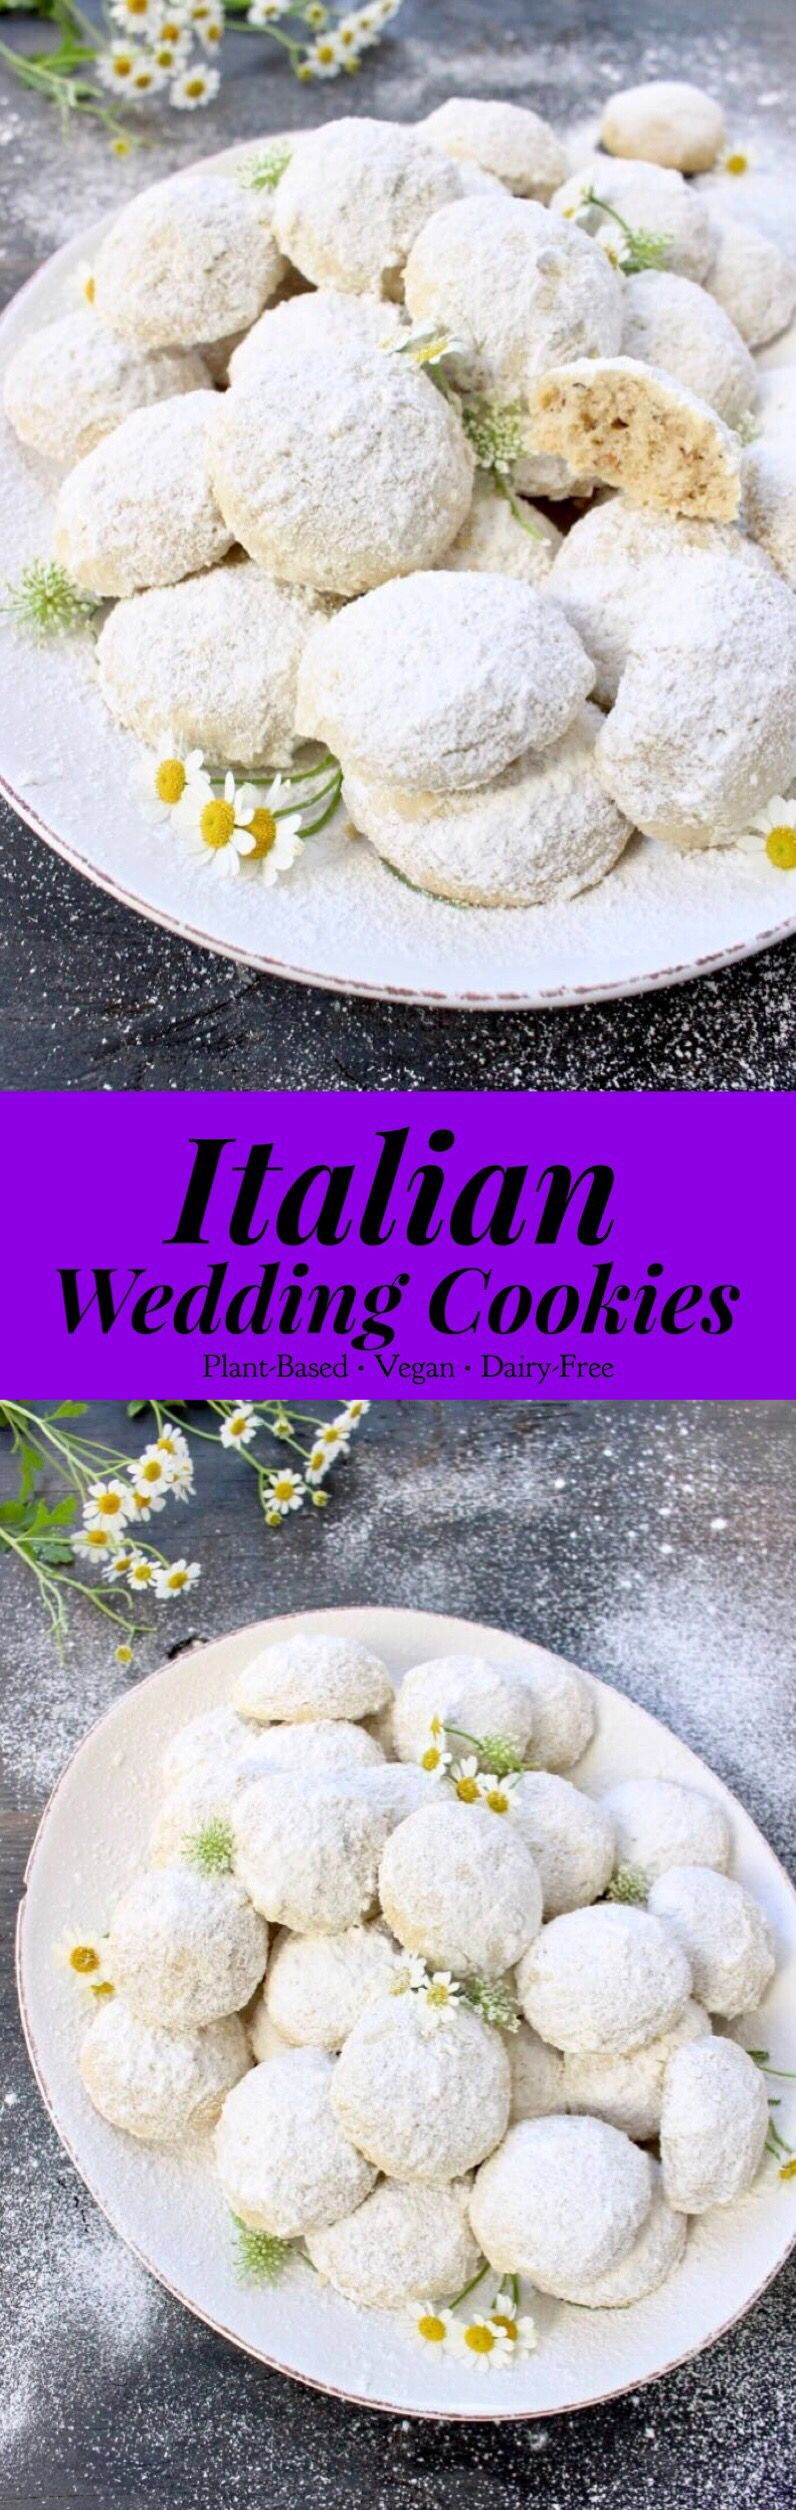 Italian Wedding Cookies with Walnuts and Hazelnuts! Easy